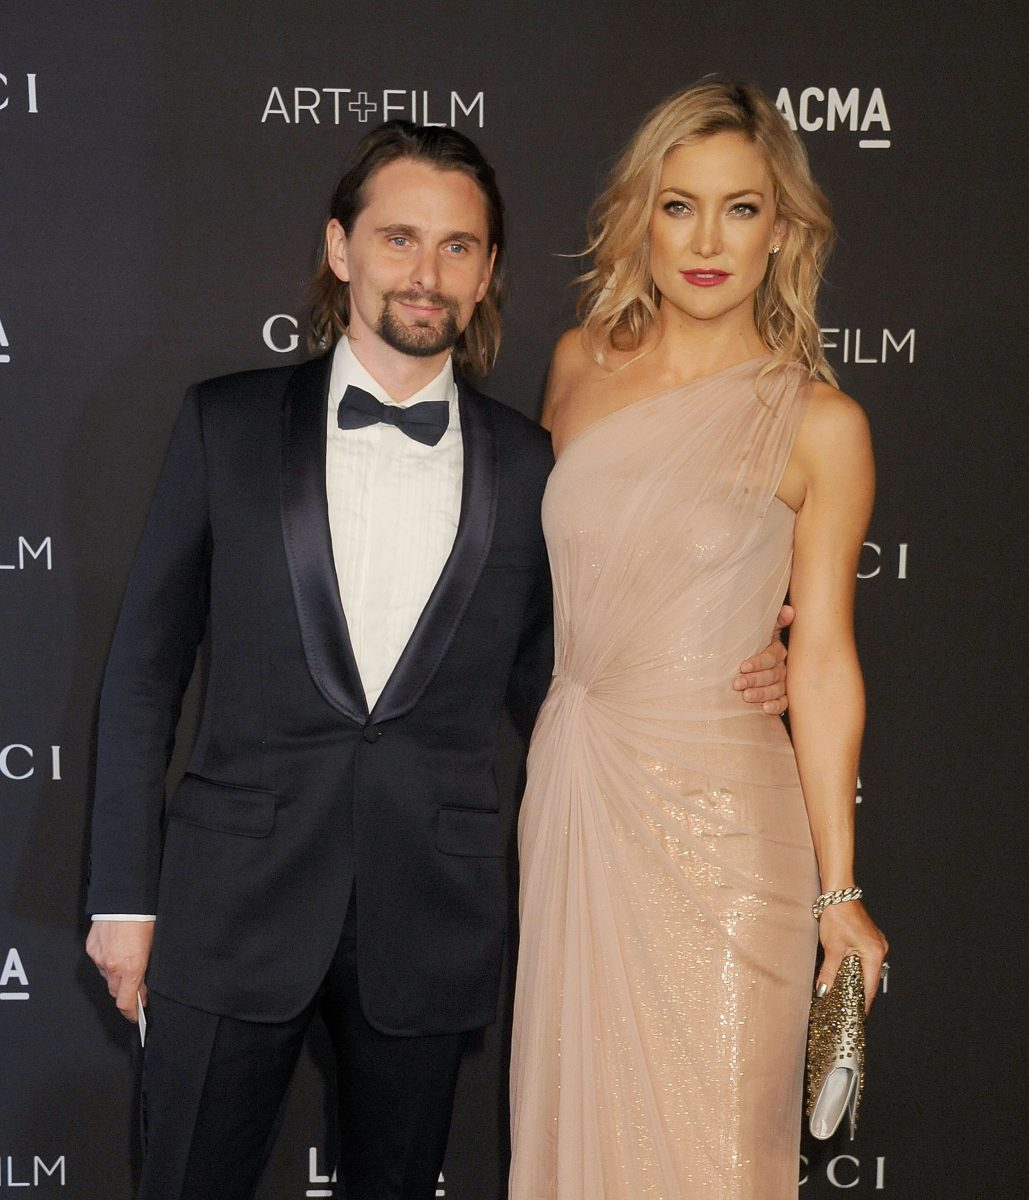 Kate Hudson and musician Matthew Bellamy pose on the red carpet together at the LACMA Art + Film Gala